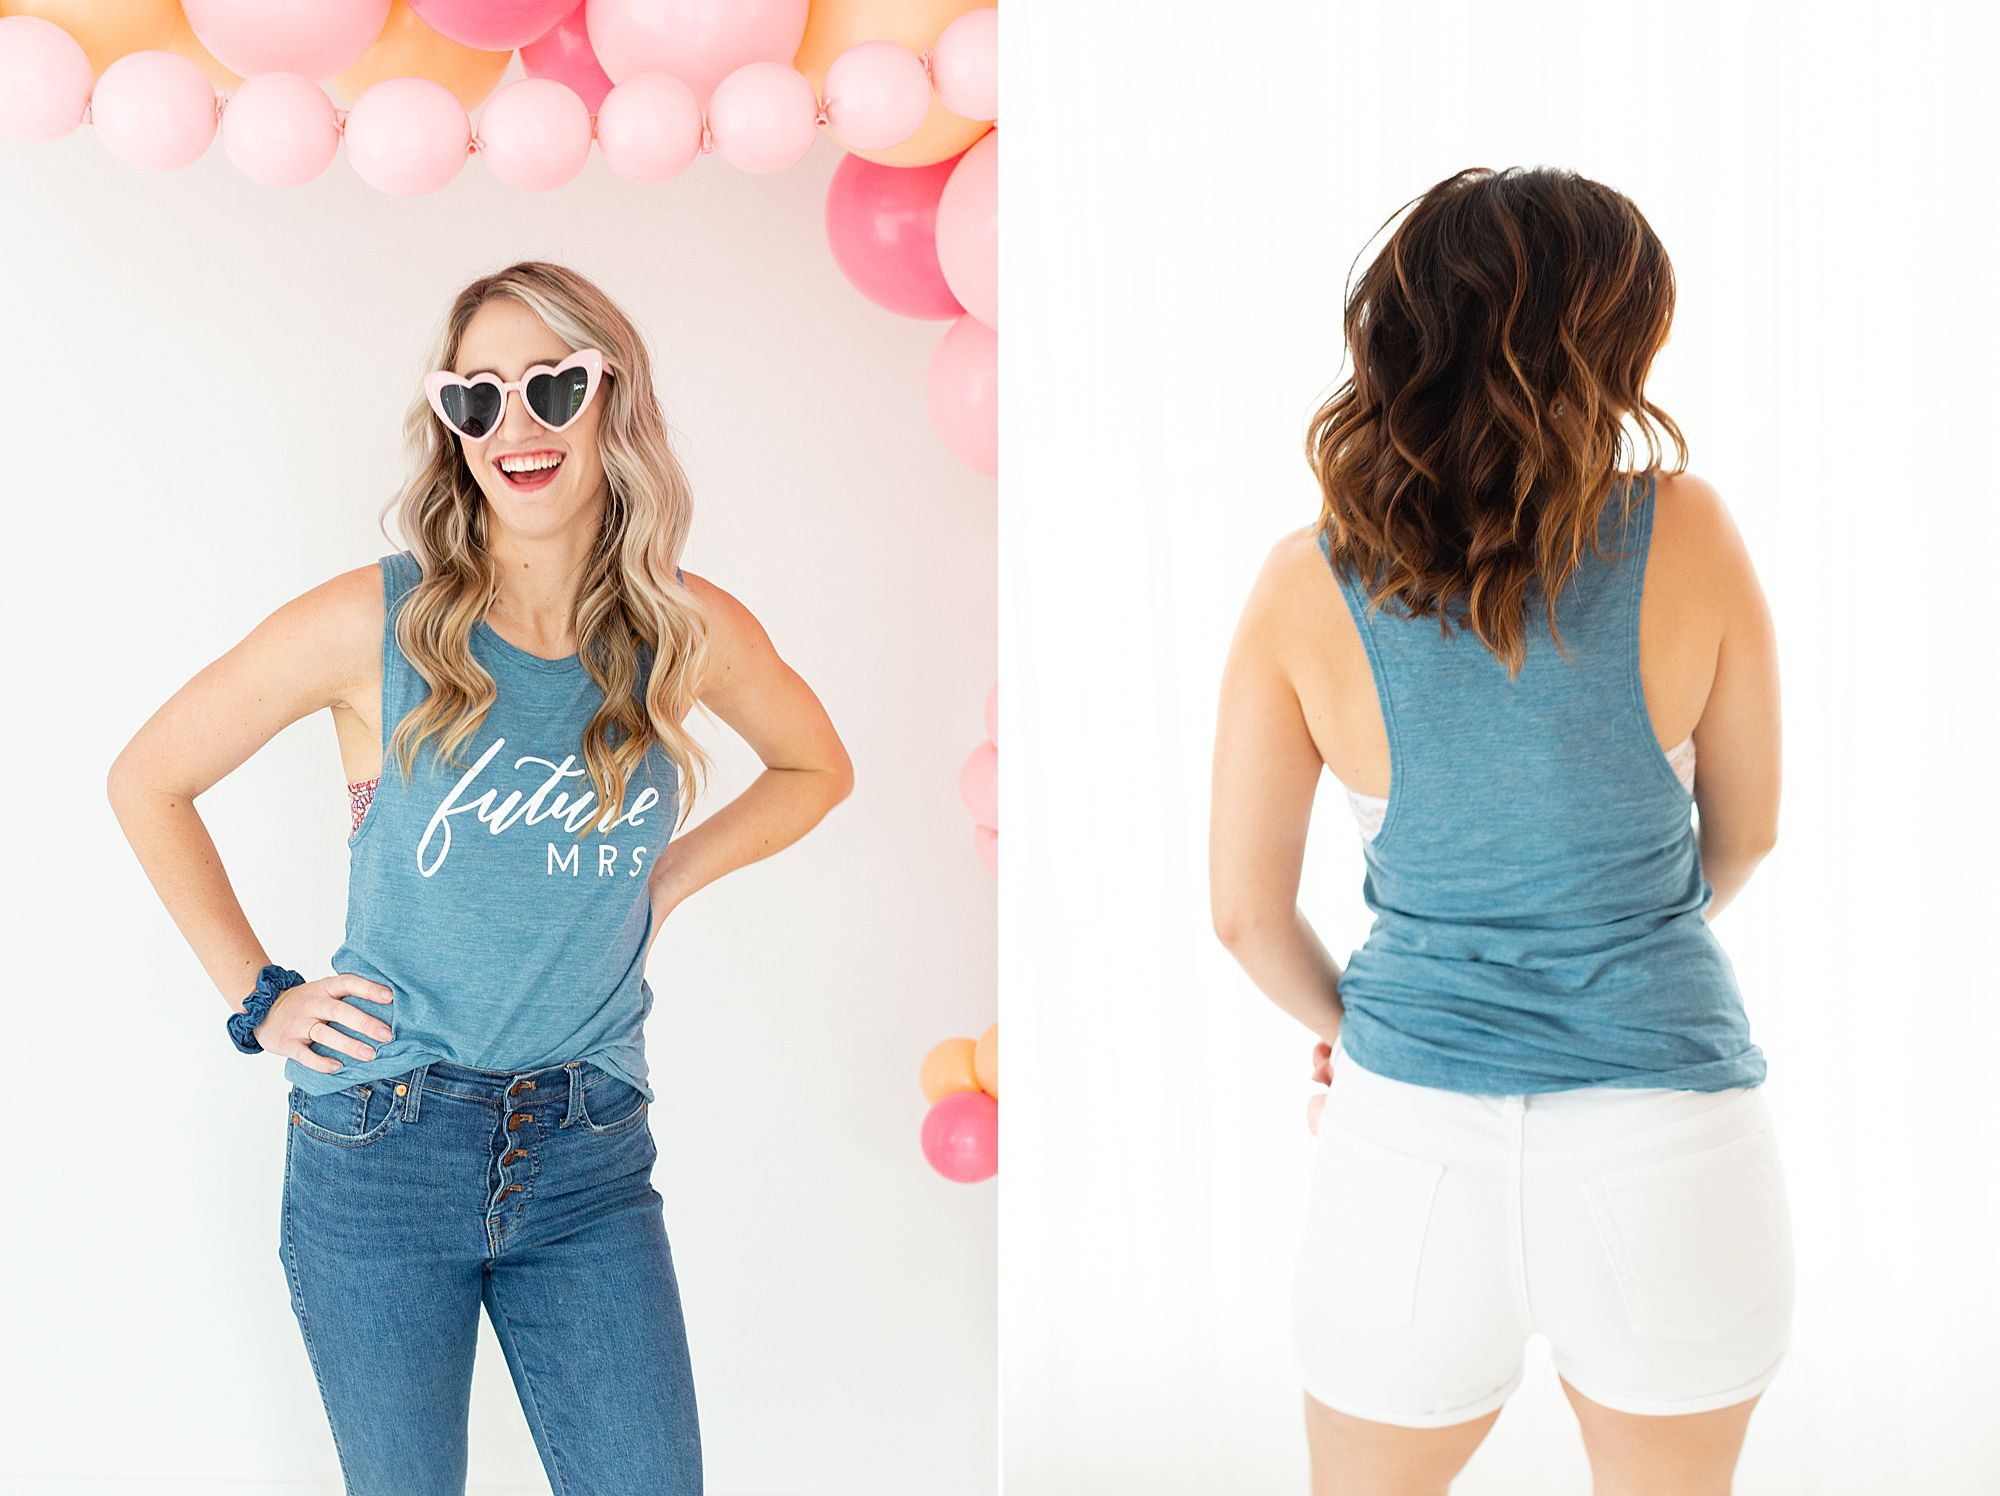 The Baum Shop - Launch Celebration - Ashley Baumgartner Etsy Shop - Bride Tank Tops and Wifey Mug - Bridal Etsy Shop_0010.jpg